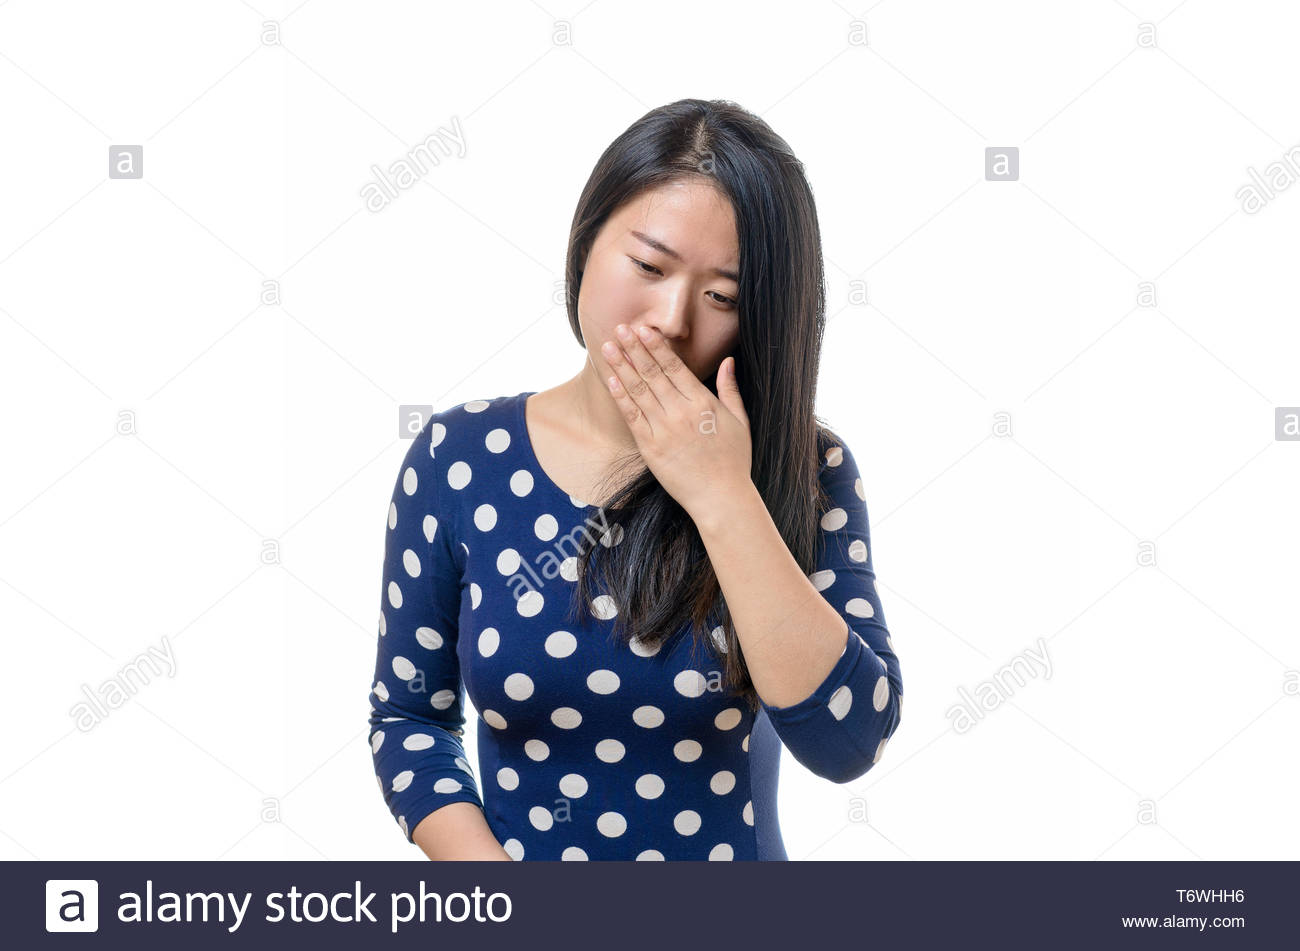 Polite young Chinese woman coughing - Stock Image